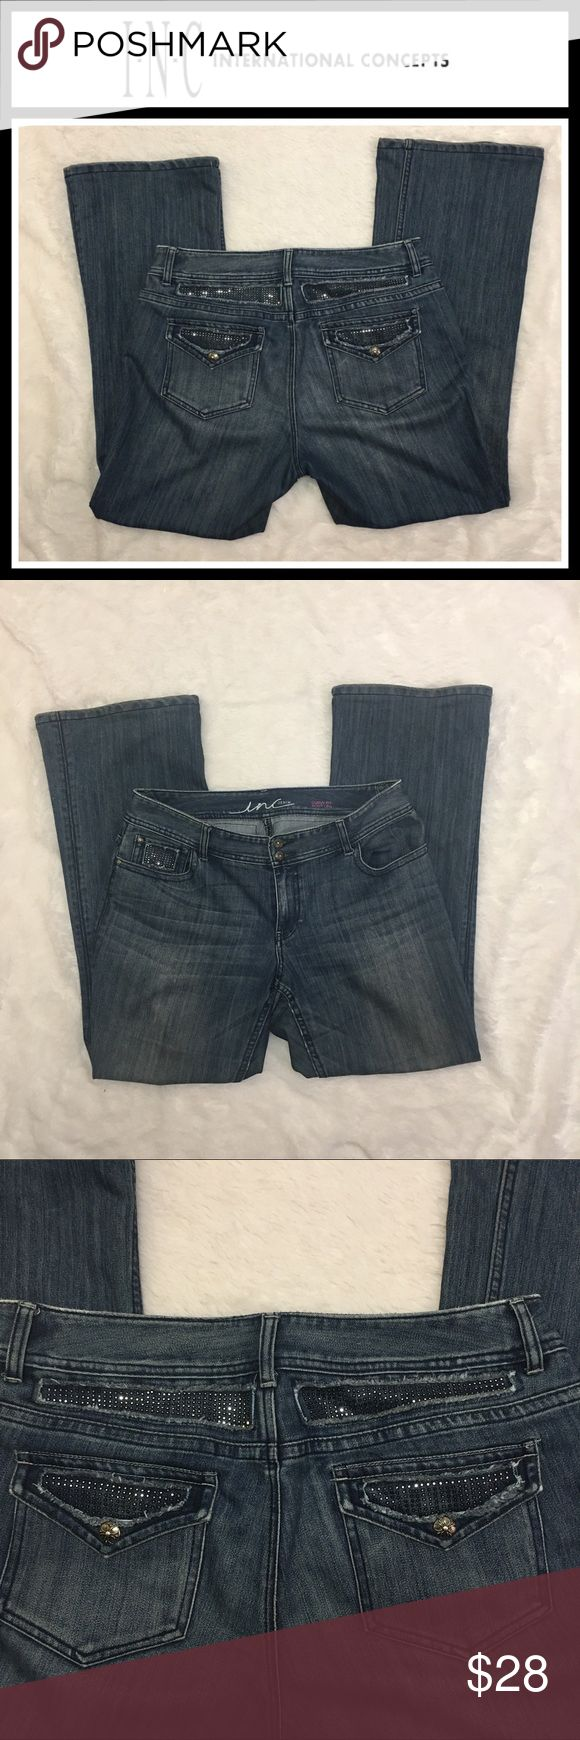 """Macy's INC curvy fit bootleg jeans with bling EUC, size 12 - these jeans are made for women with curves! Super cute bling on the pockets - inseam 31"""" INC International Concepts Jeans Boot Cut"""